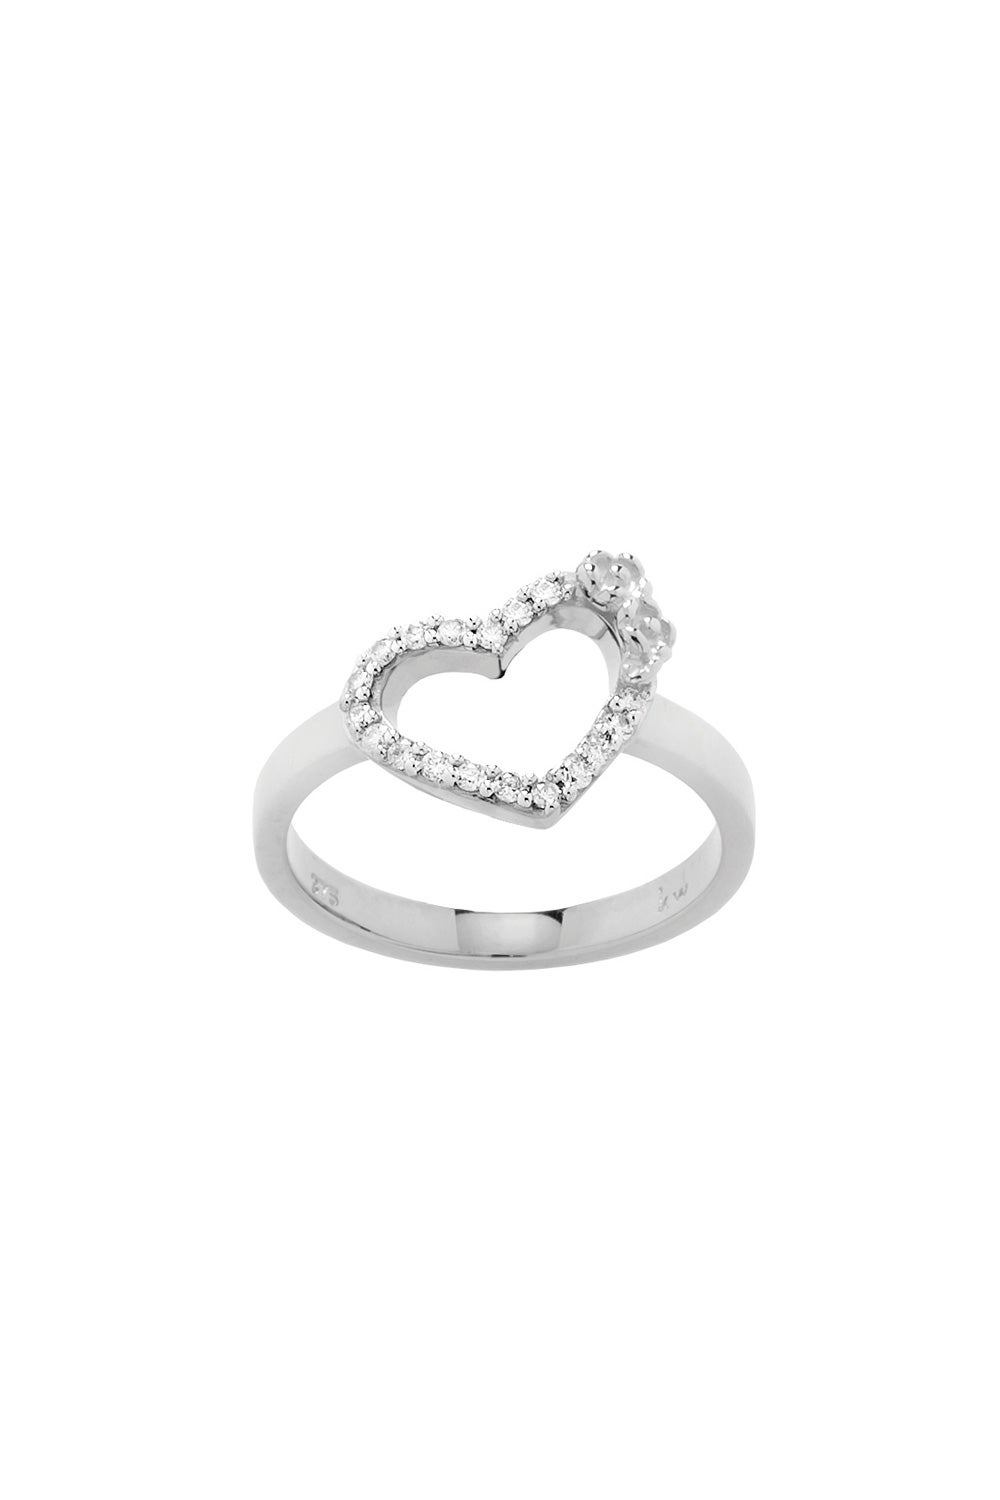 Diamond Botanical Heart Ring, 9ct White Gold, .15ct Diamond